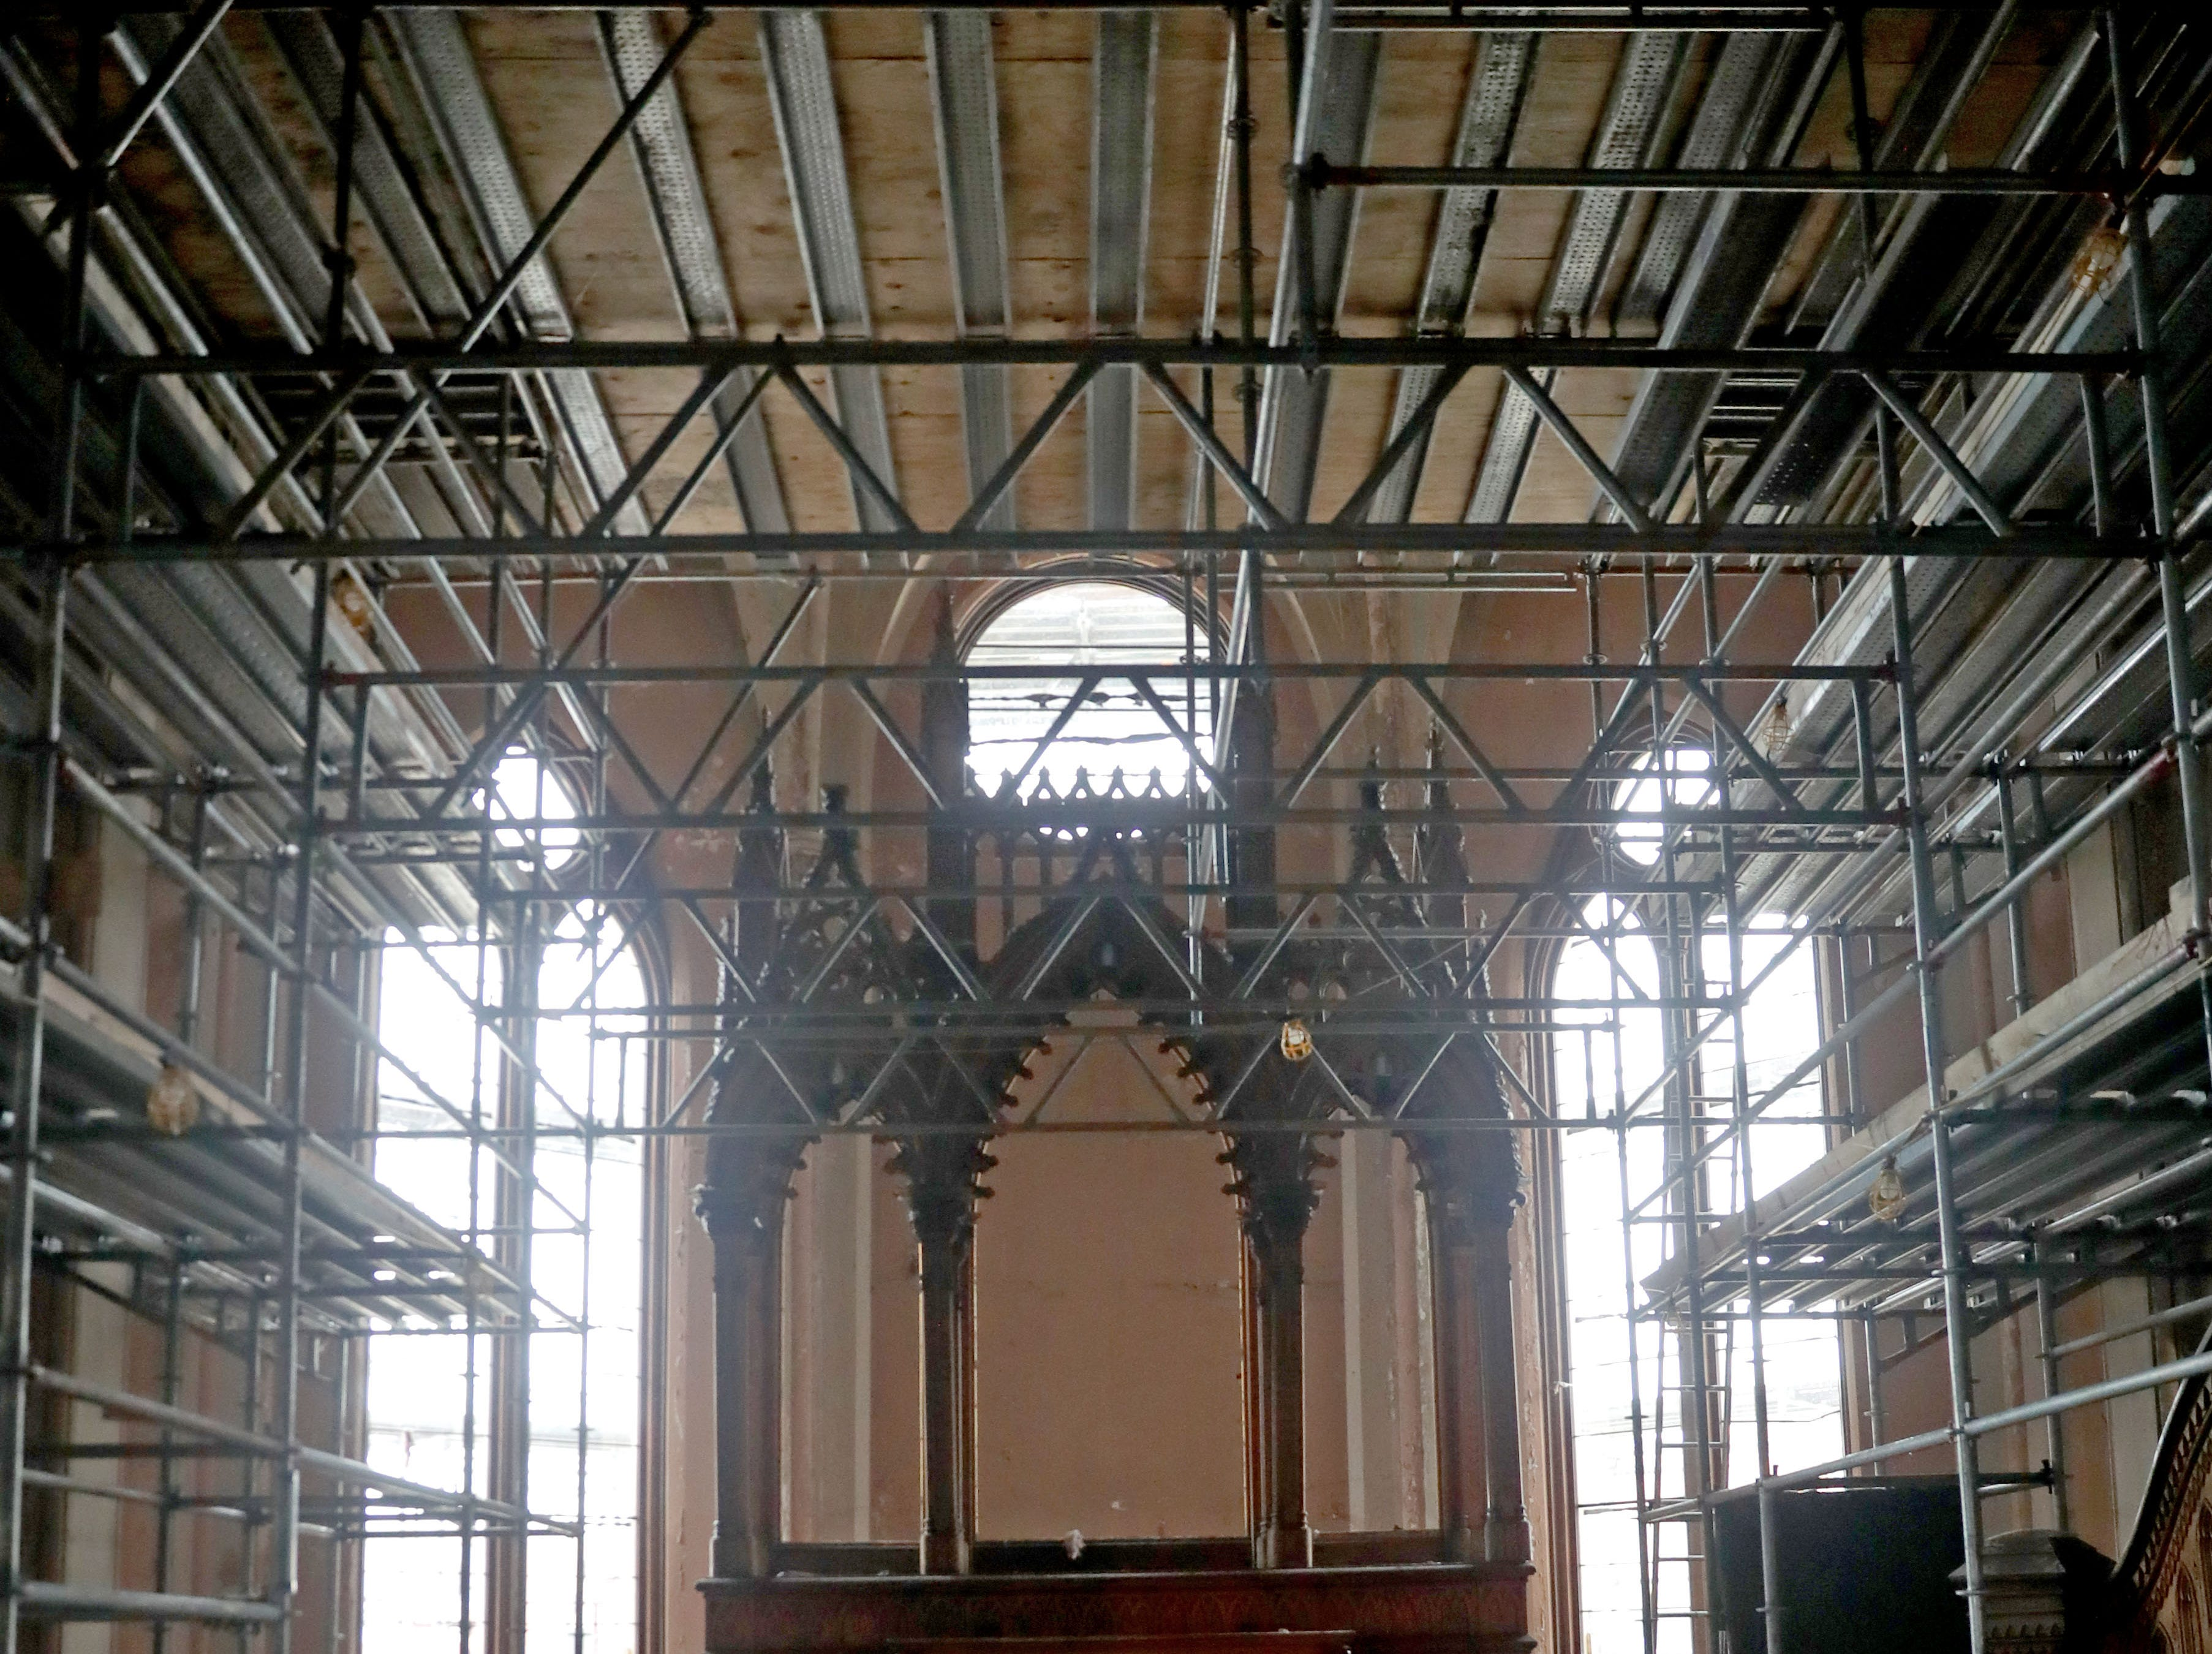 Scaffolding is in place in the chapel area.